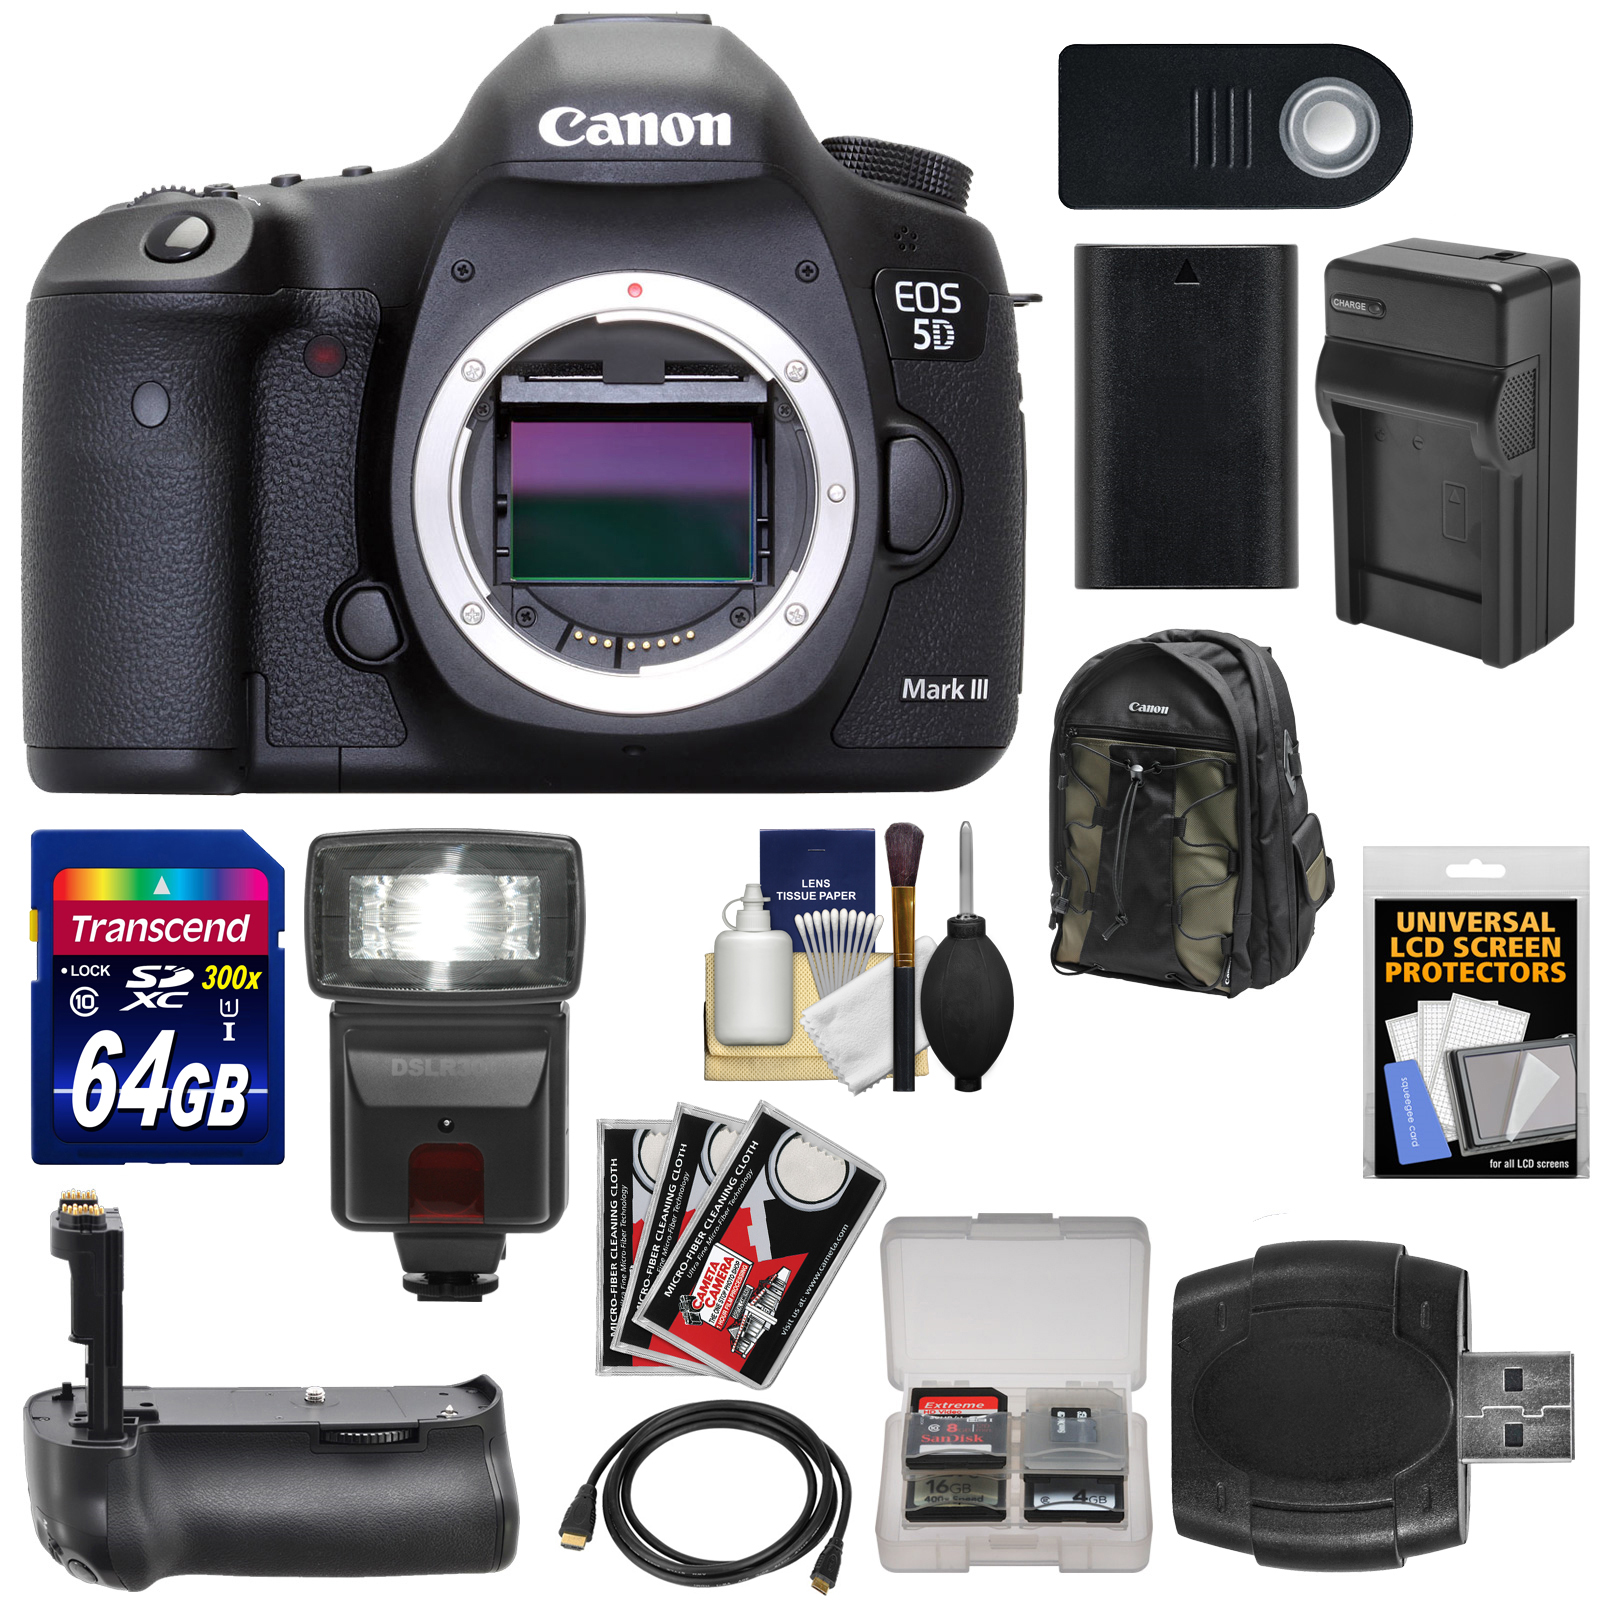 Canon EOS 5D Mark III Digital SLR Camera Body with 64GB Card + Flash + Grip + Battery & Charger + Backpack + Accessory... by Canon